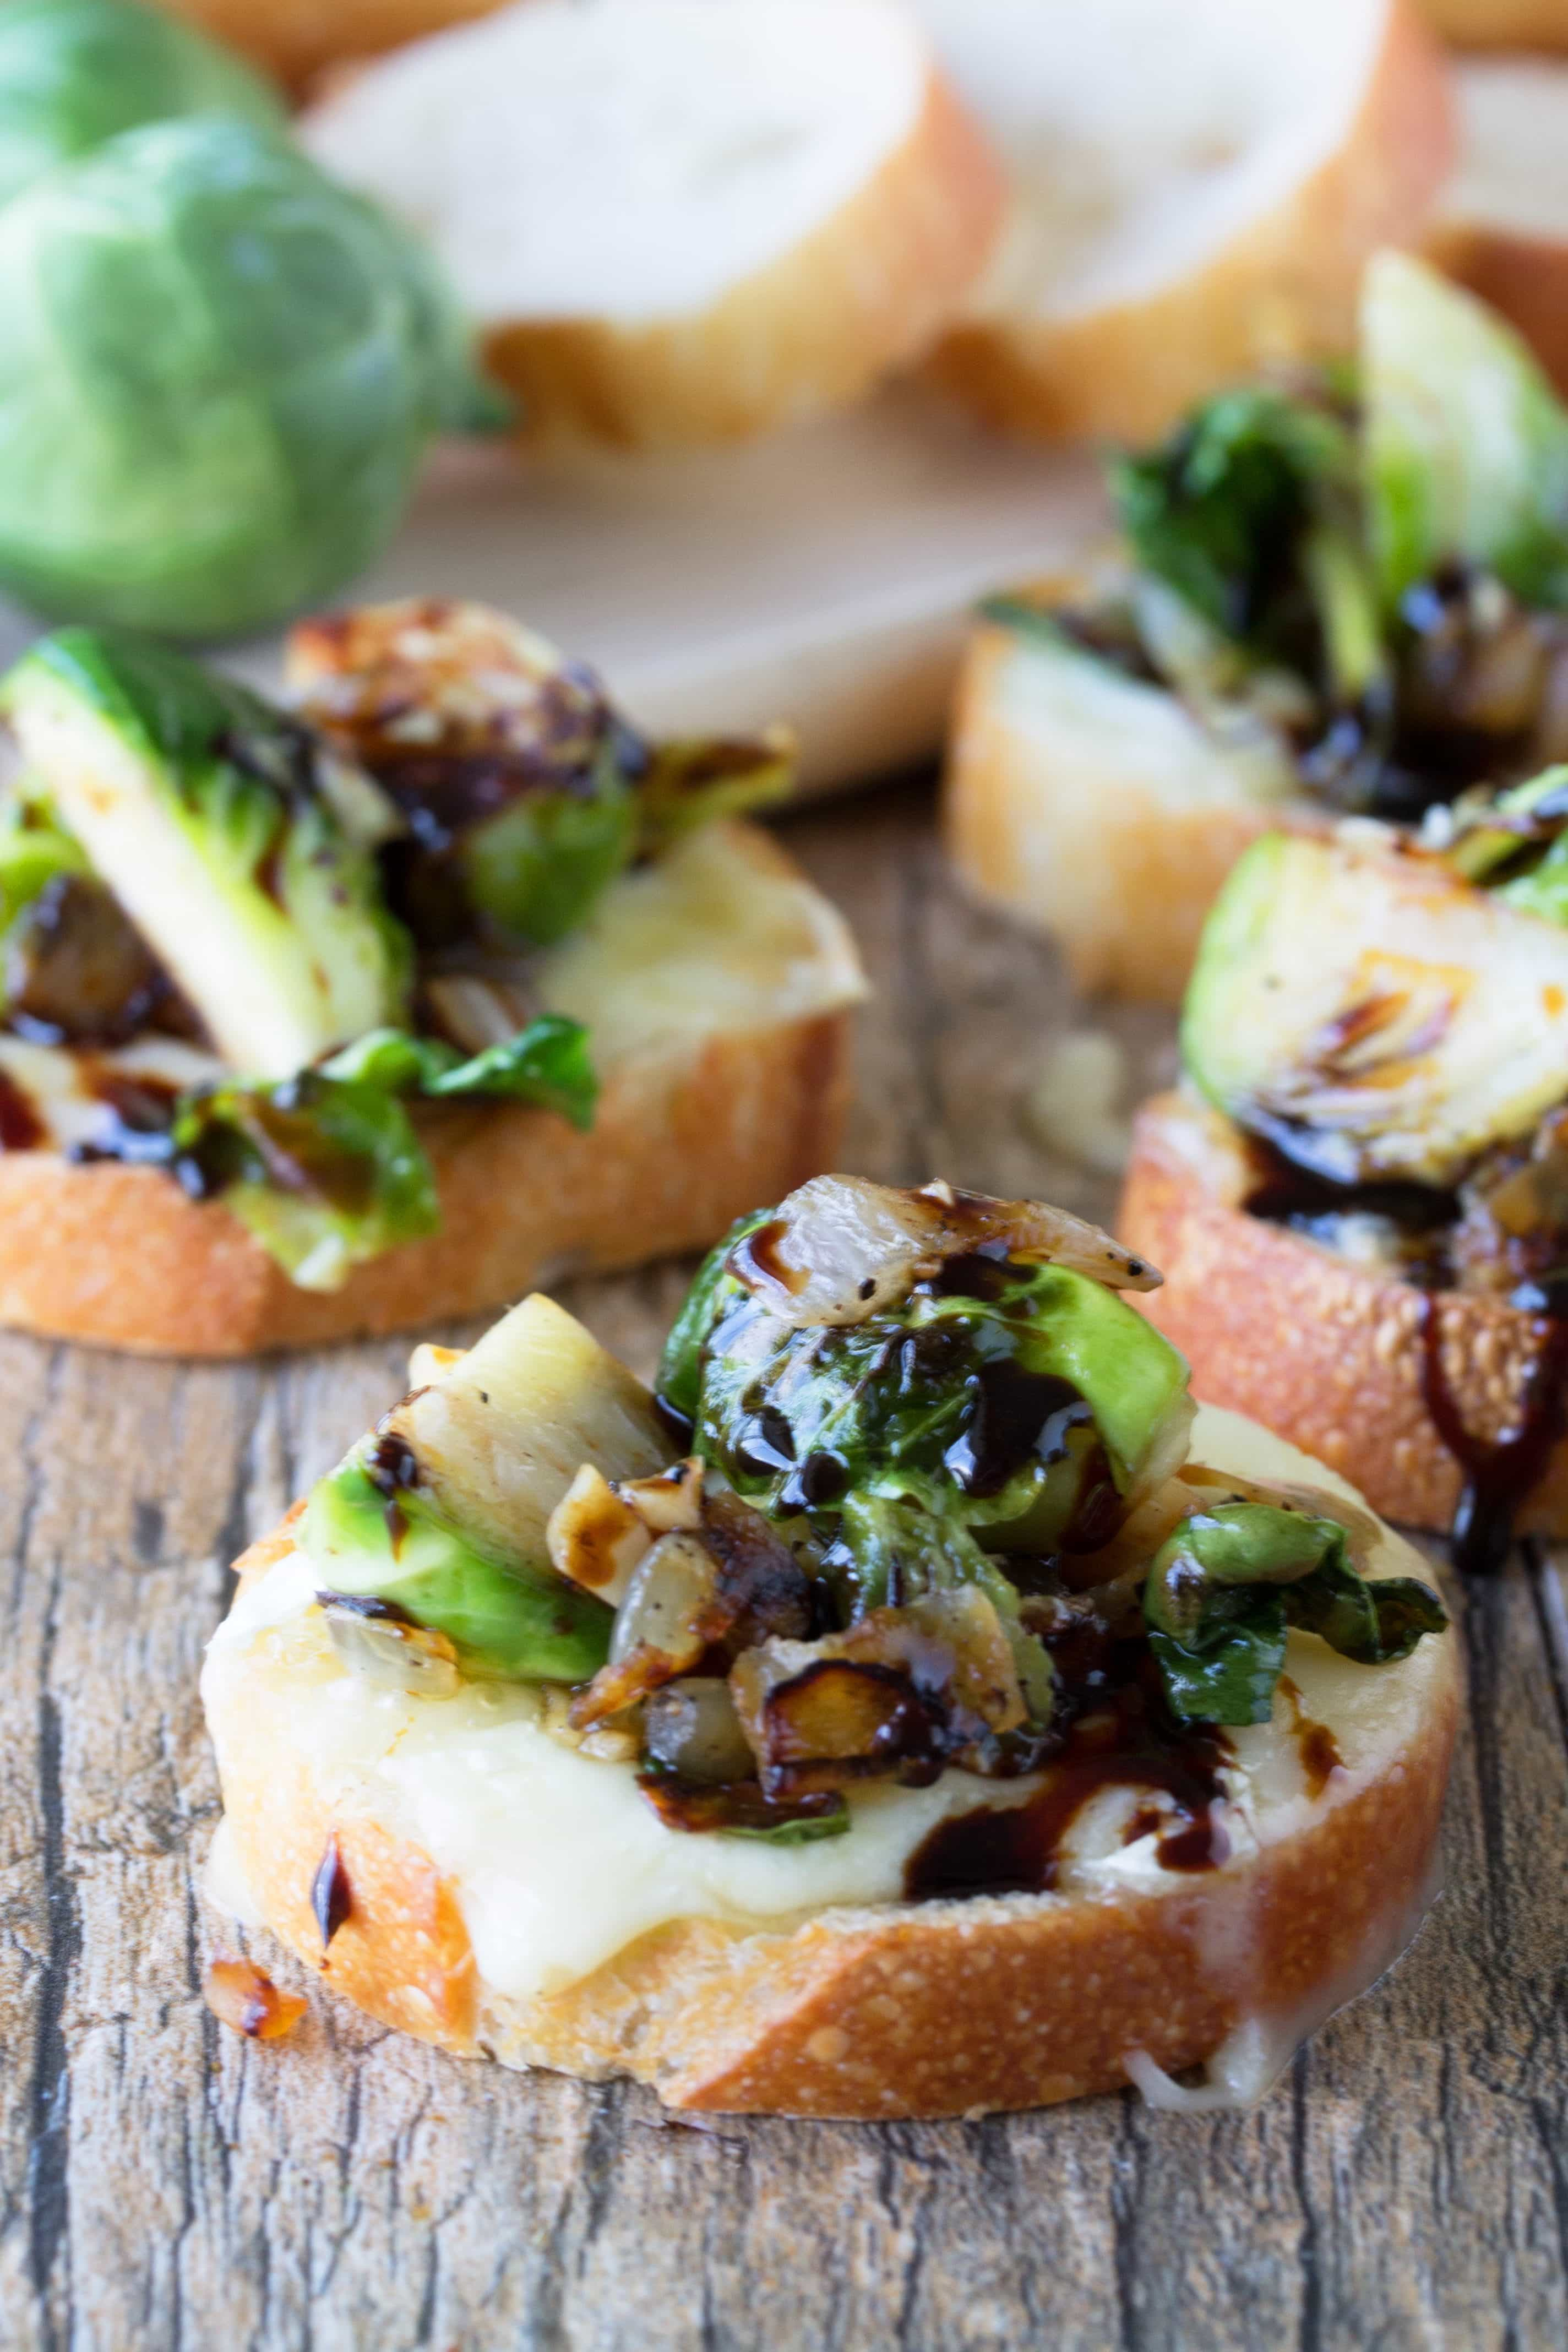 Brussel Sprout and Brie Bruschetta is a trendy appetizer that is both beautiful and tasty. Drizzle it in some fine balsamic vinegar and you have a total winner!